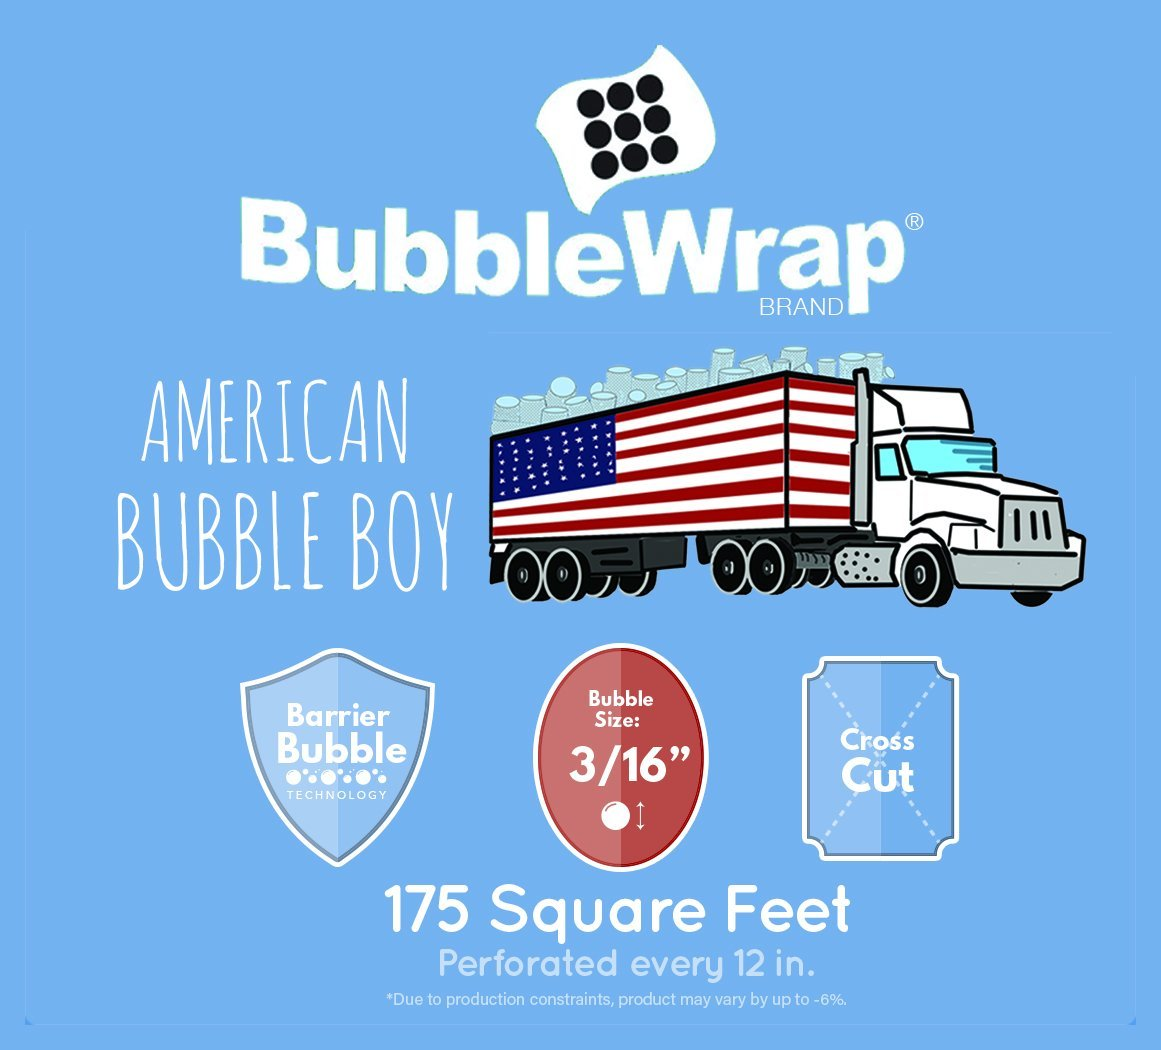 Bubble Wrap 175', Small 3/16 Cushioning, 175 ft with Perforated Every 12'' (175' Coreless Bubble Wrap)